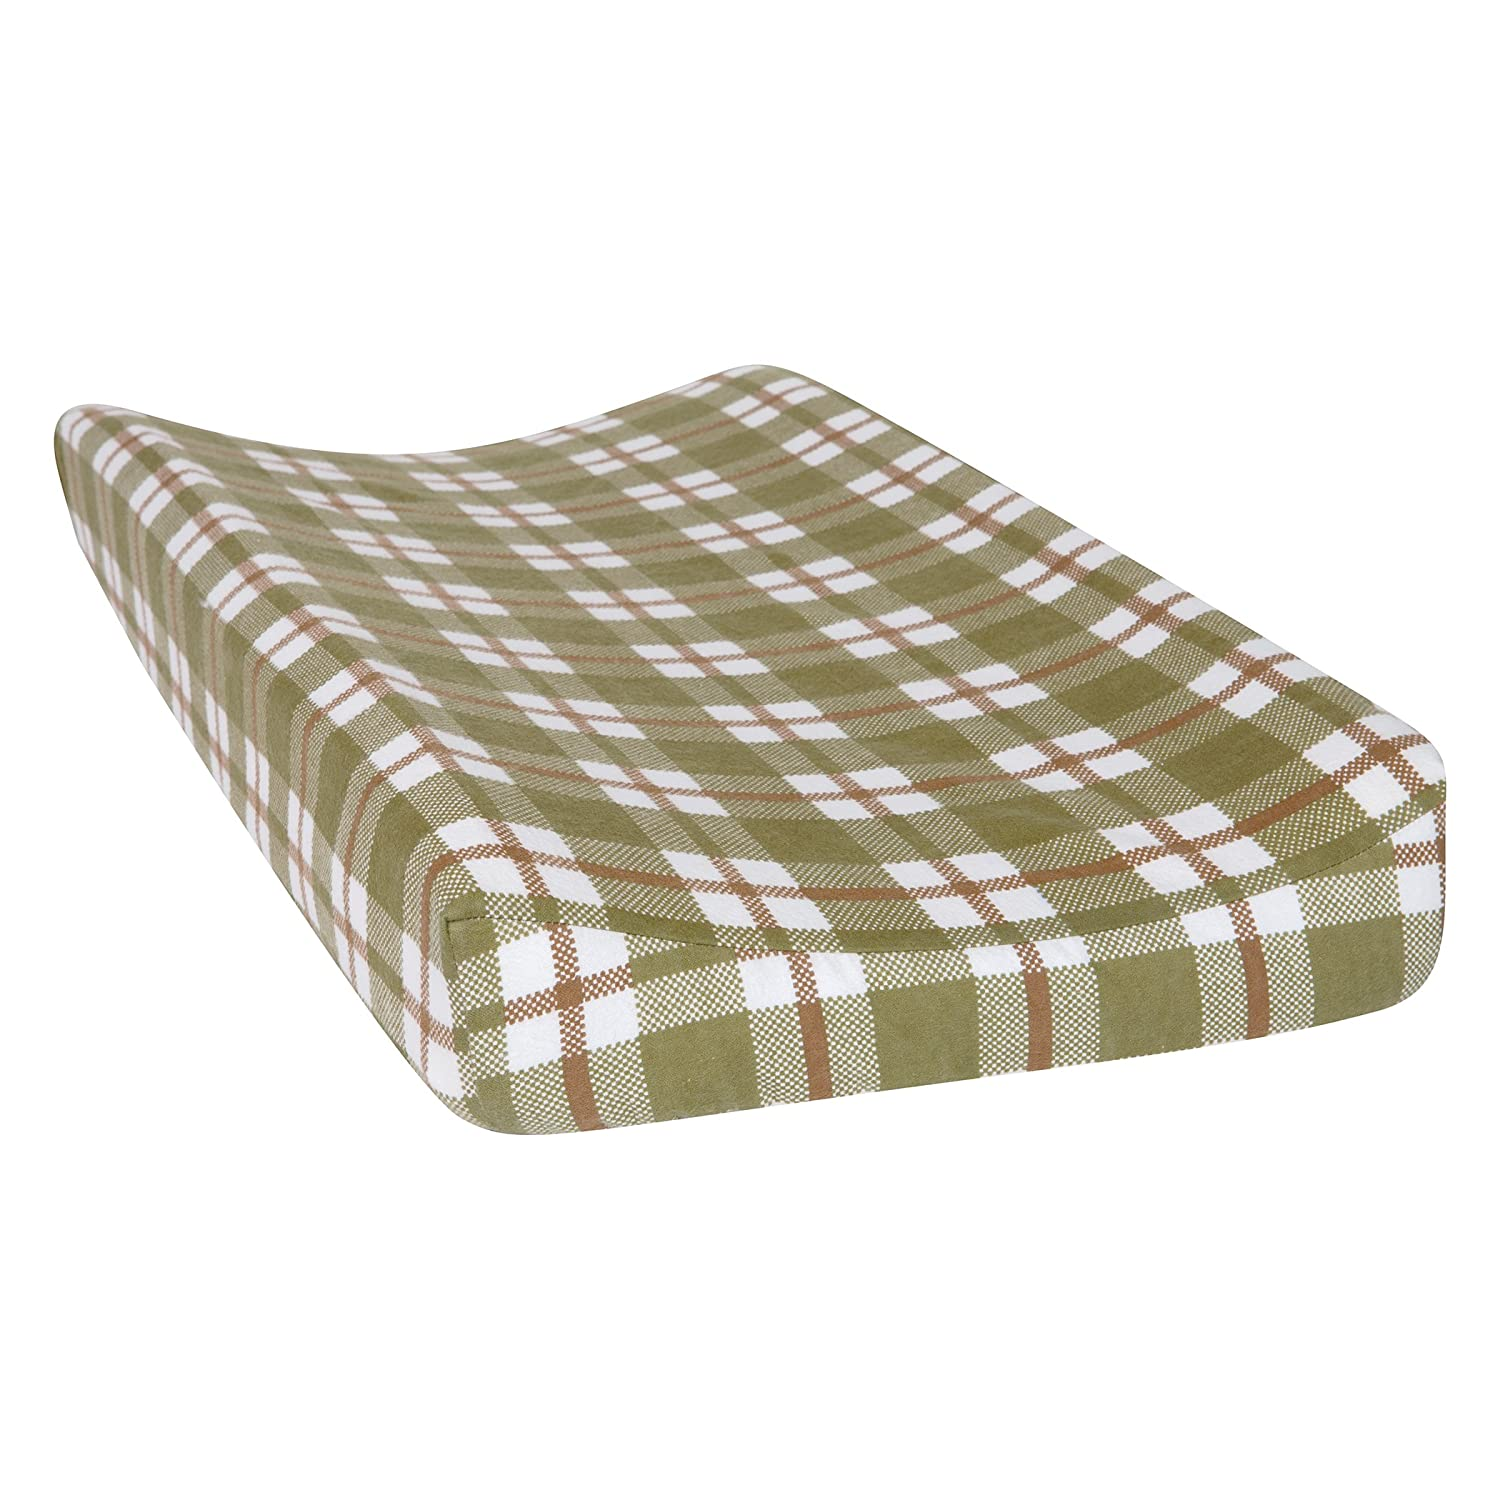 Trend Lab Plaid Deluxe Flannel Changing Pad Cover, Sage/Brown/Cream 102749